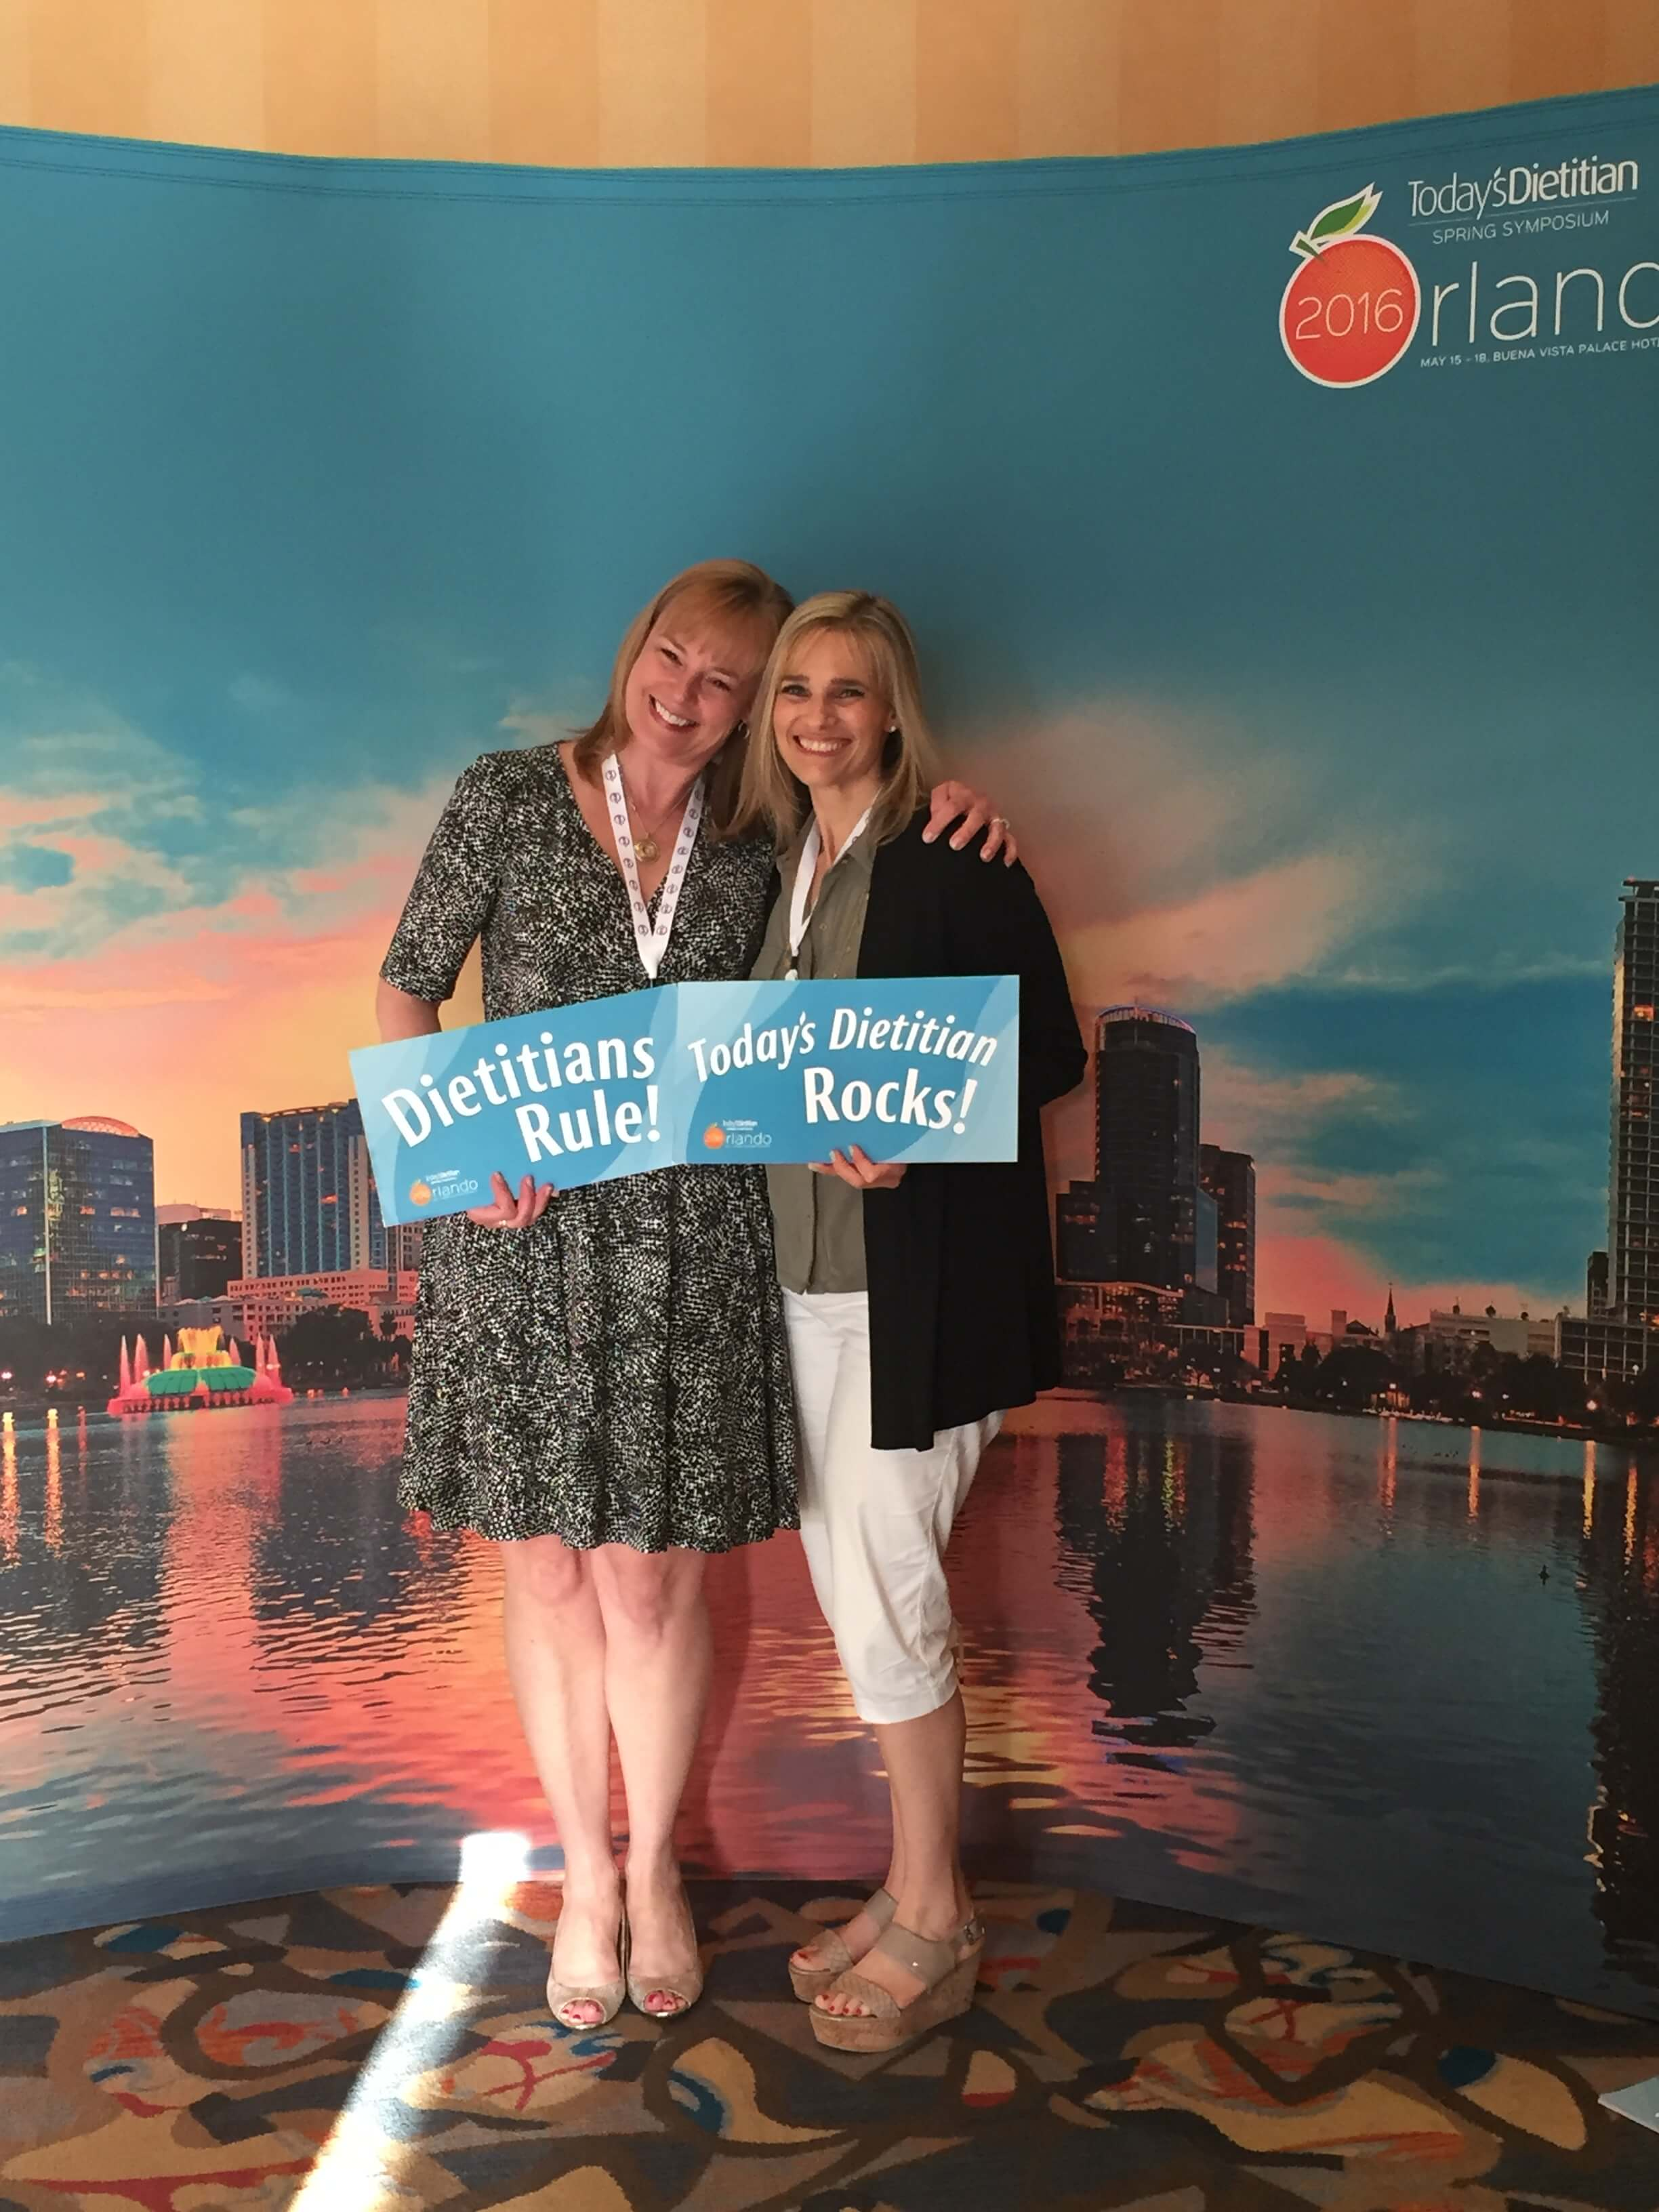 Me and Lauren at the Today's Dietitian Symposium in Orlando earlier this month